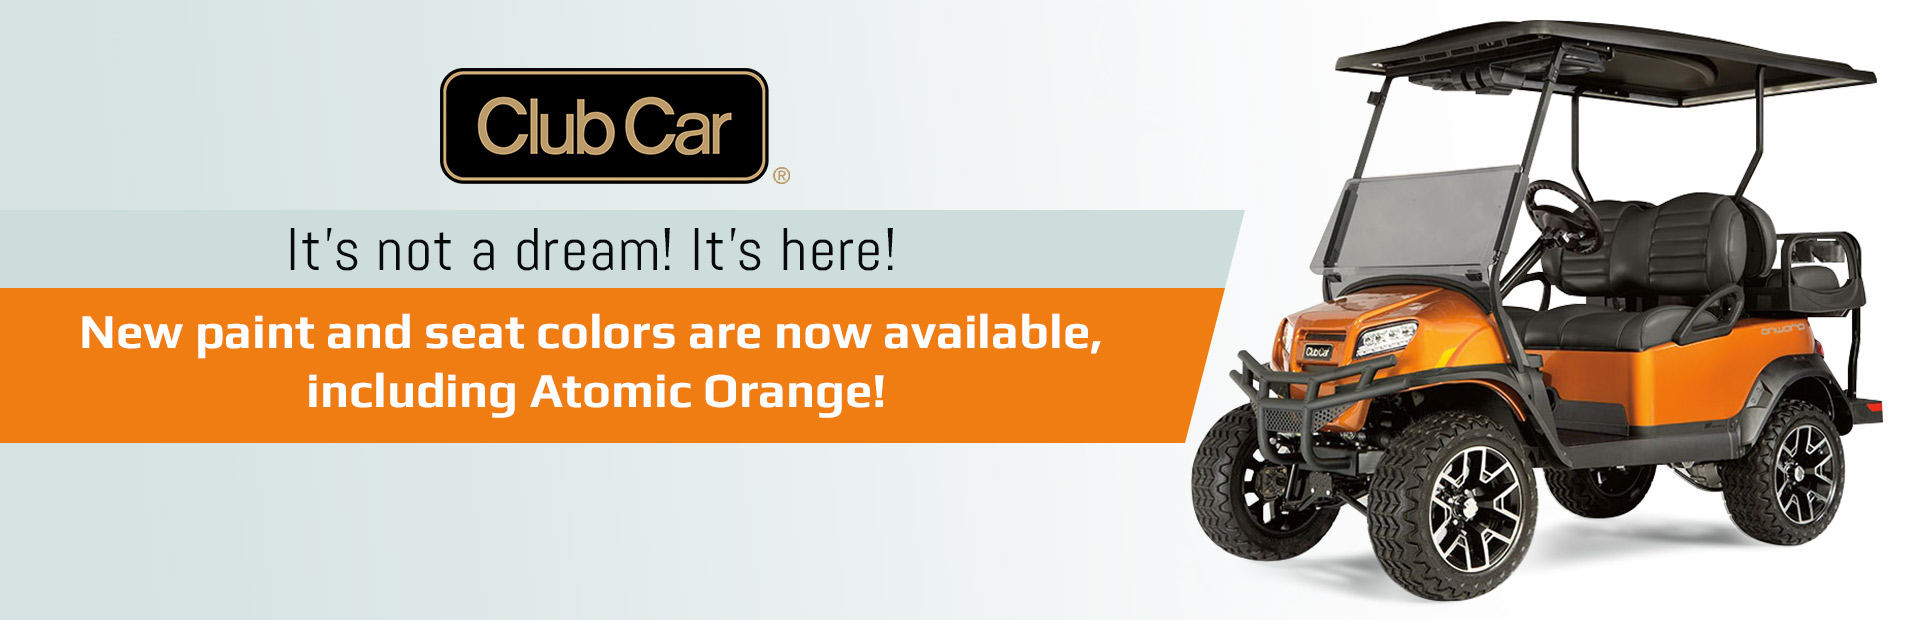 Cub Car: New paint and seat colors are now available, including Atomic Orange!